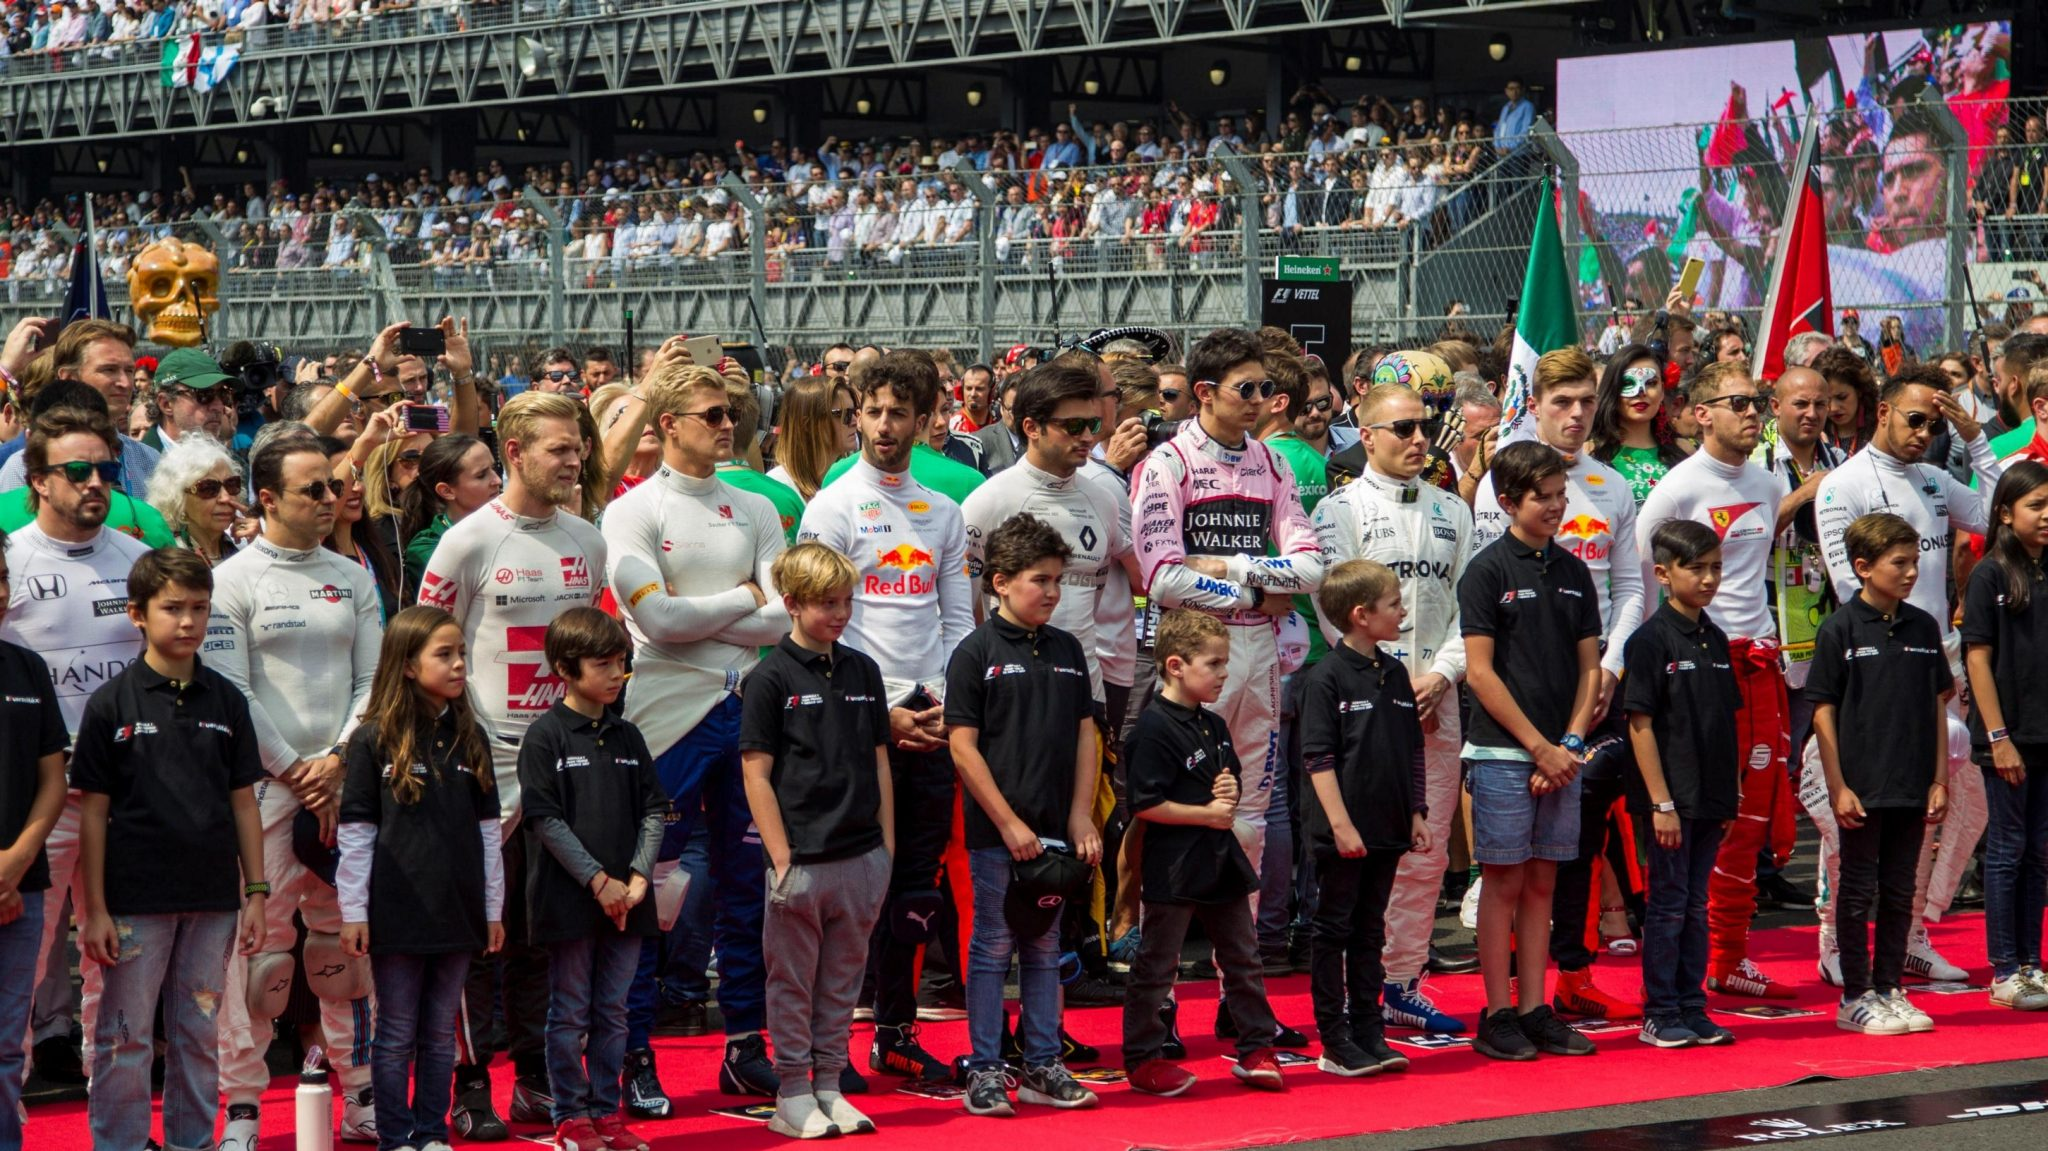 https://www.formula1.com/content/fom-website/en/latest/headlines/2018/2/formula-1-and-fia-in-new-grid-kids-partnership/_jcr_content/image16x9.img.2048.medium.jpg/1517841889203.jpg